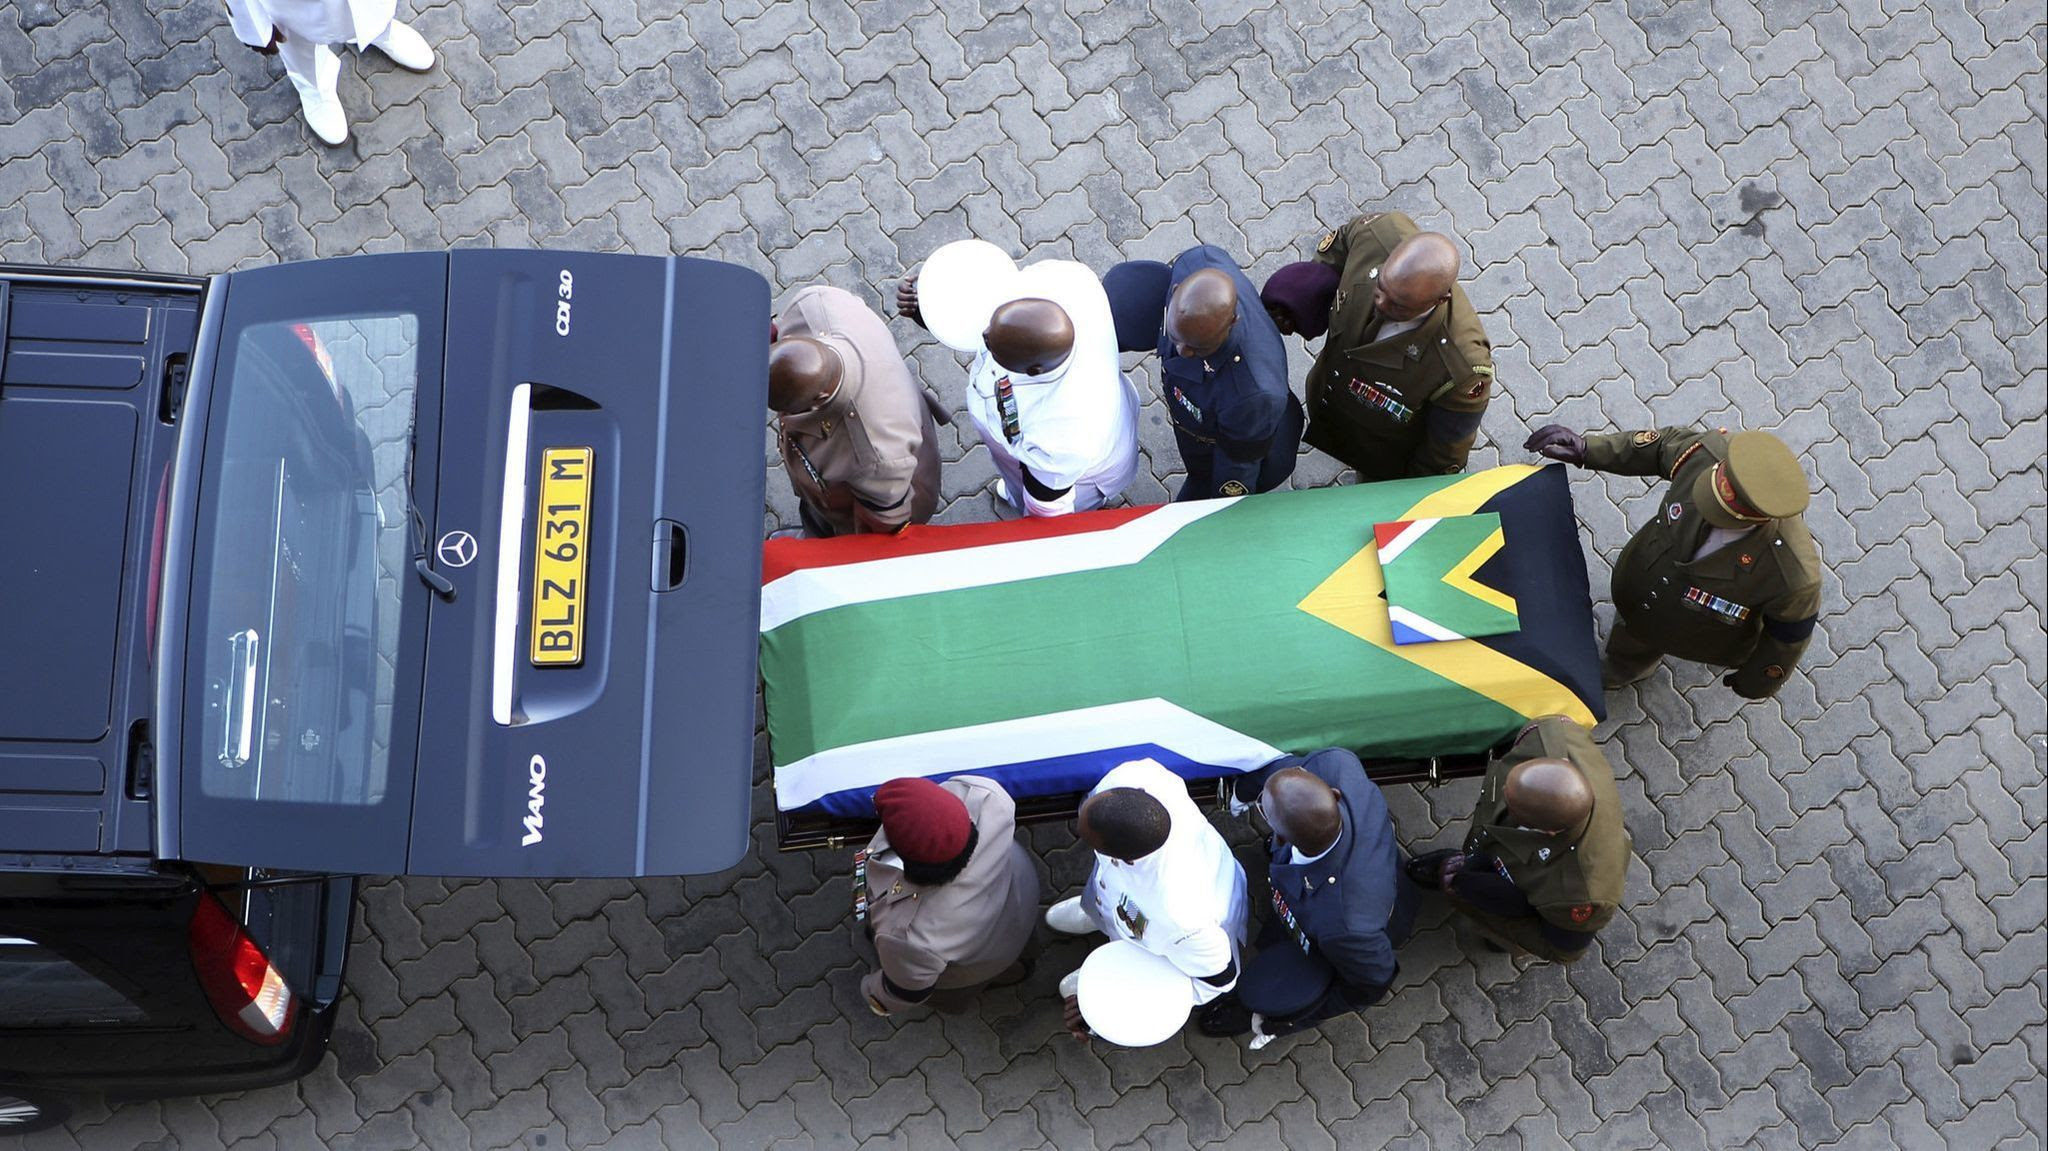 The flag-draped casket carrying the remains of struggle icon Winnie Madikizela-Mandela arrives at th